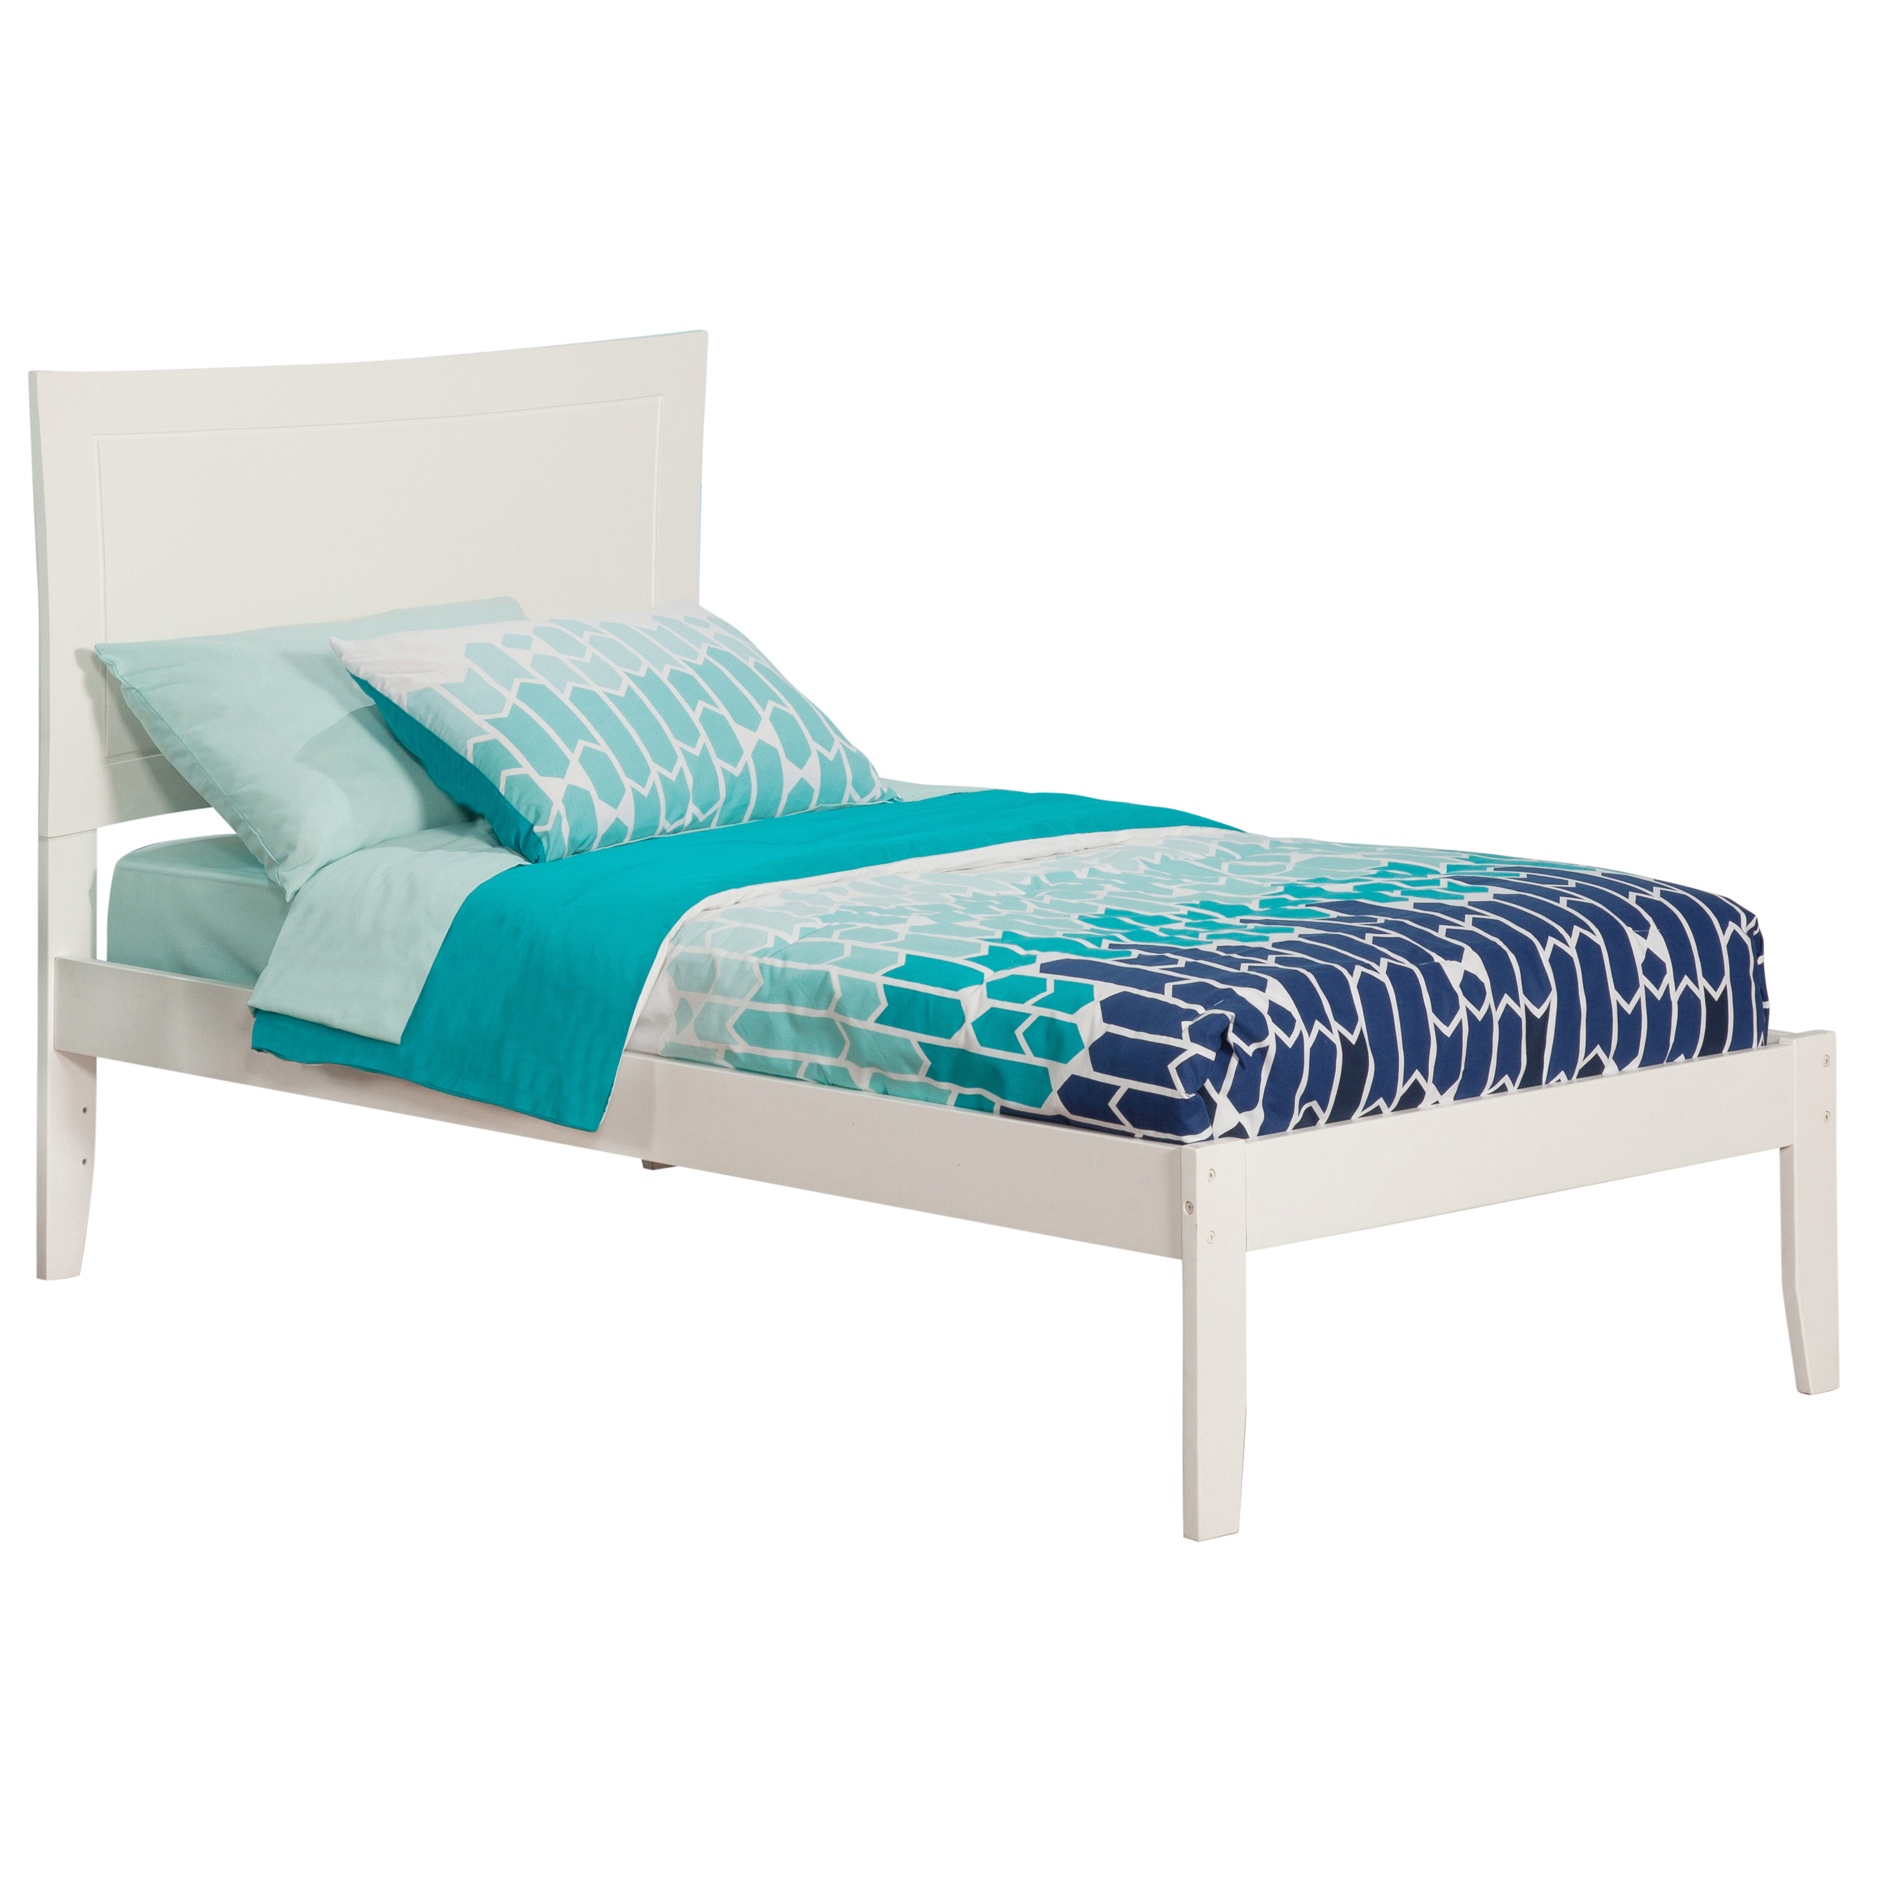 Metro Platform Bed with Open Footrails - White